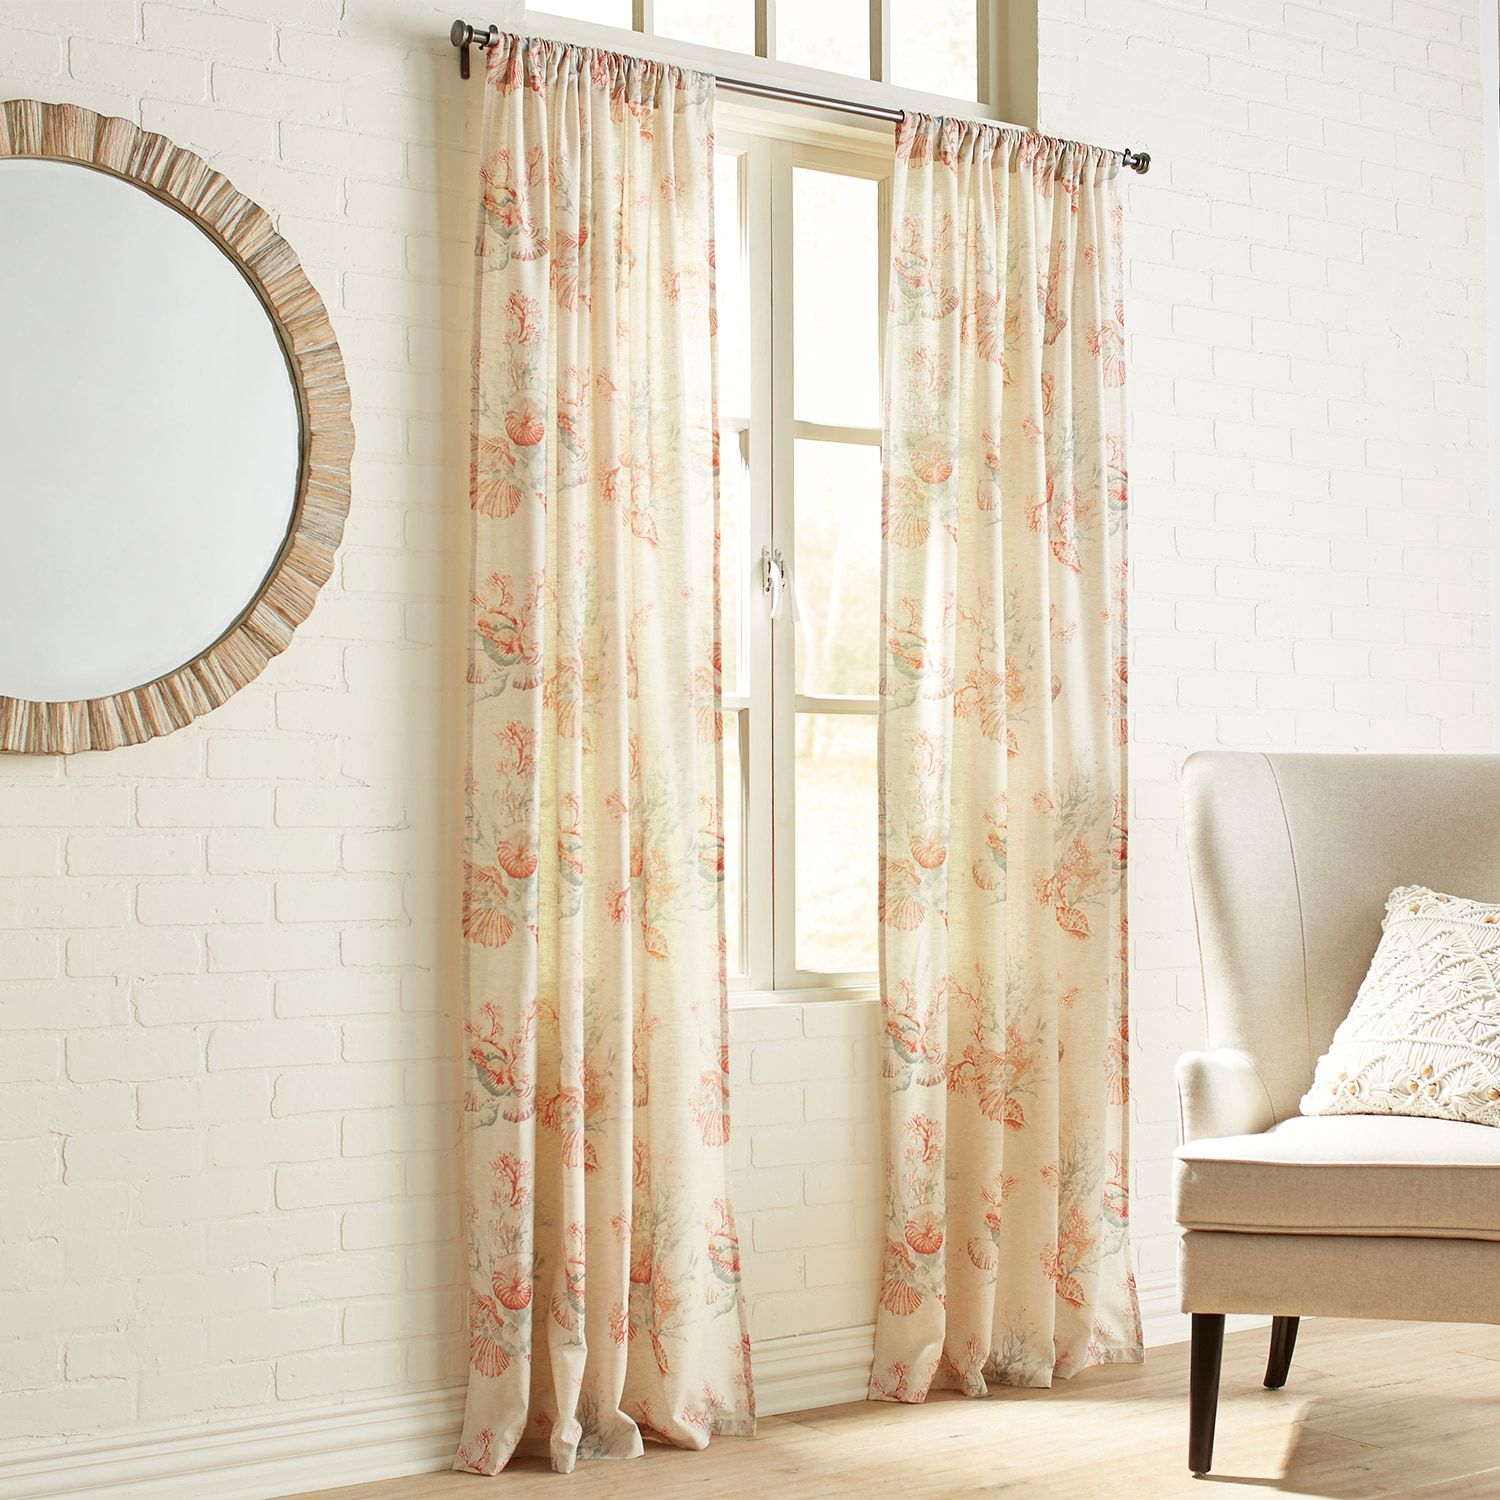 Coral Patterned Curtains Simple Decorating